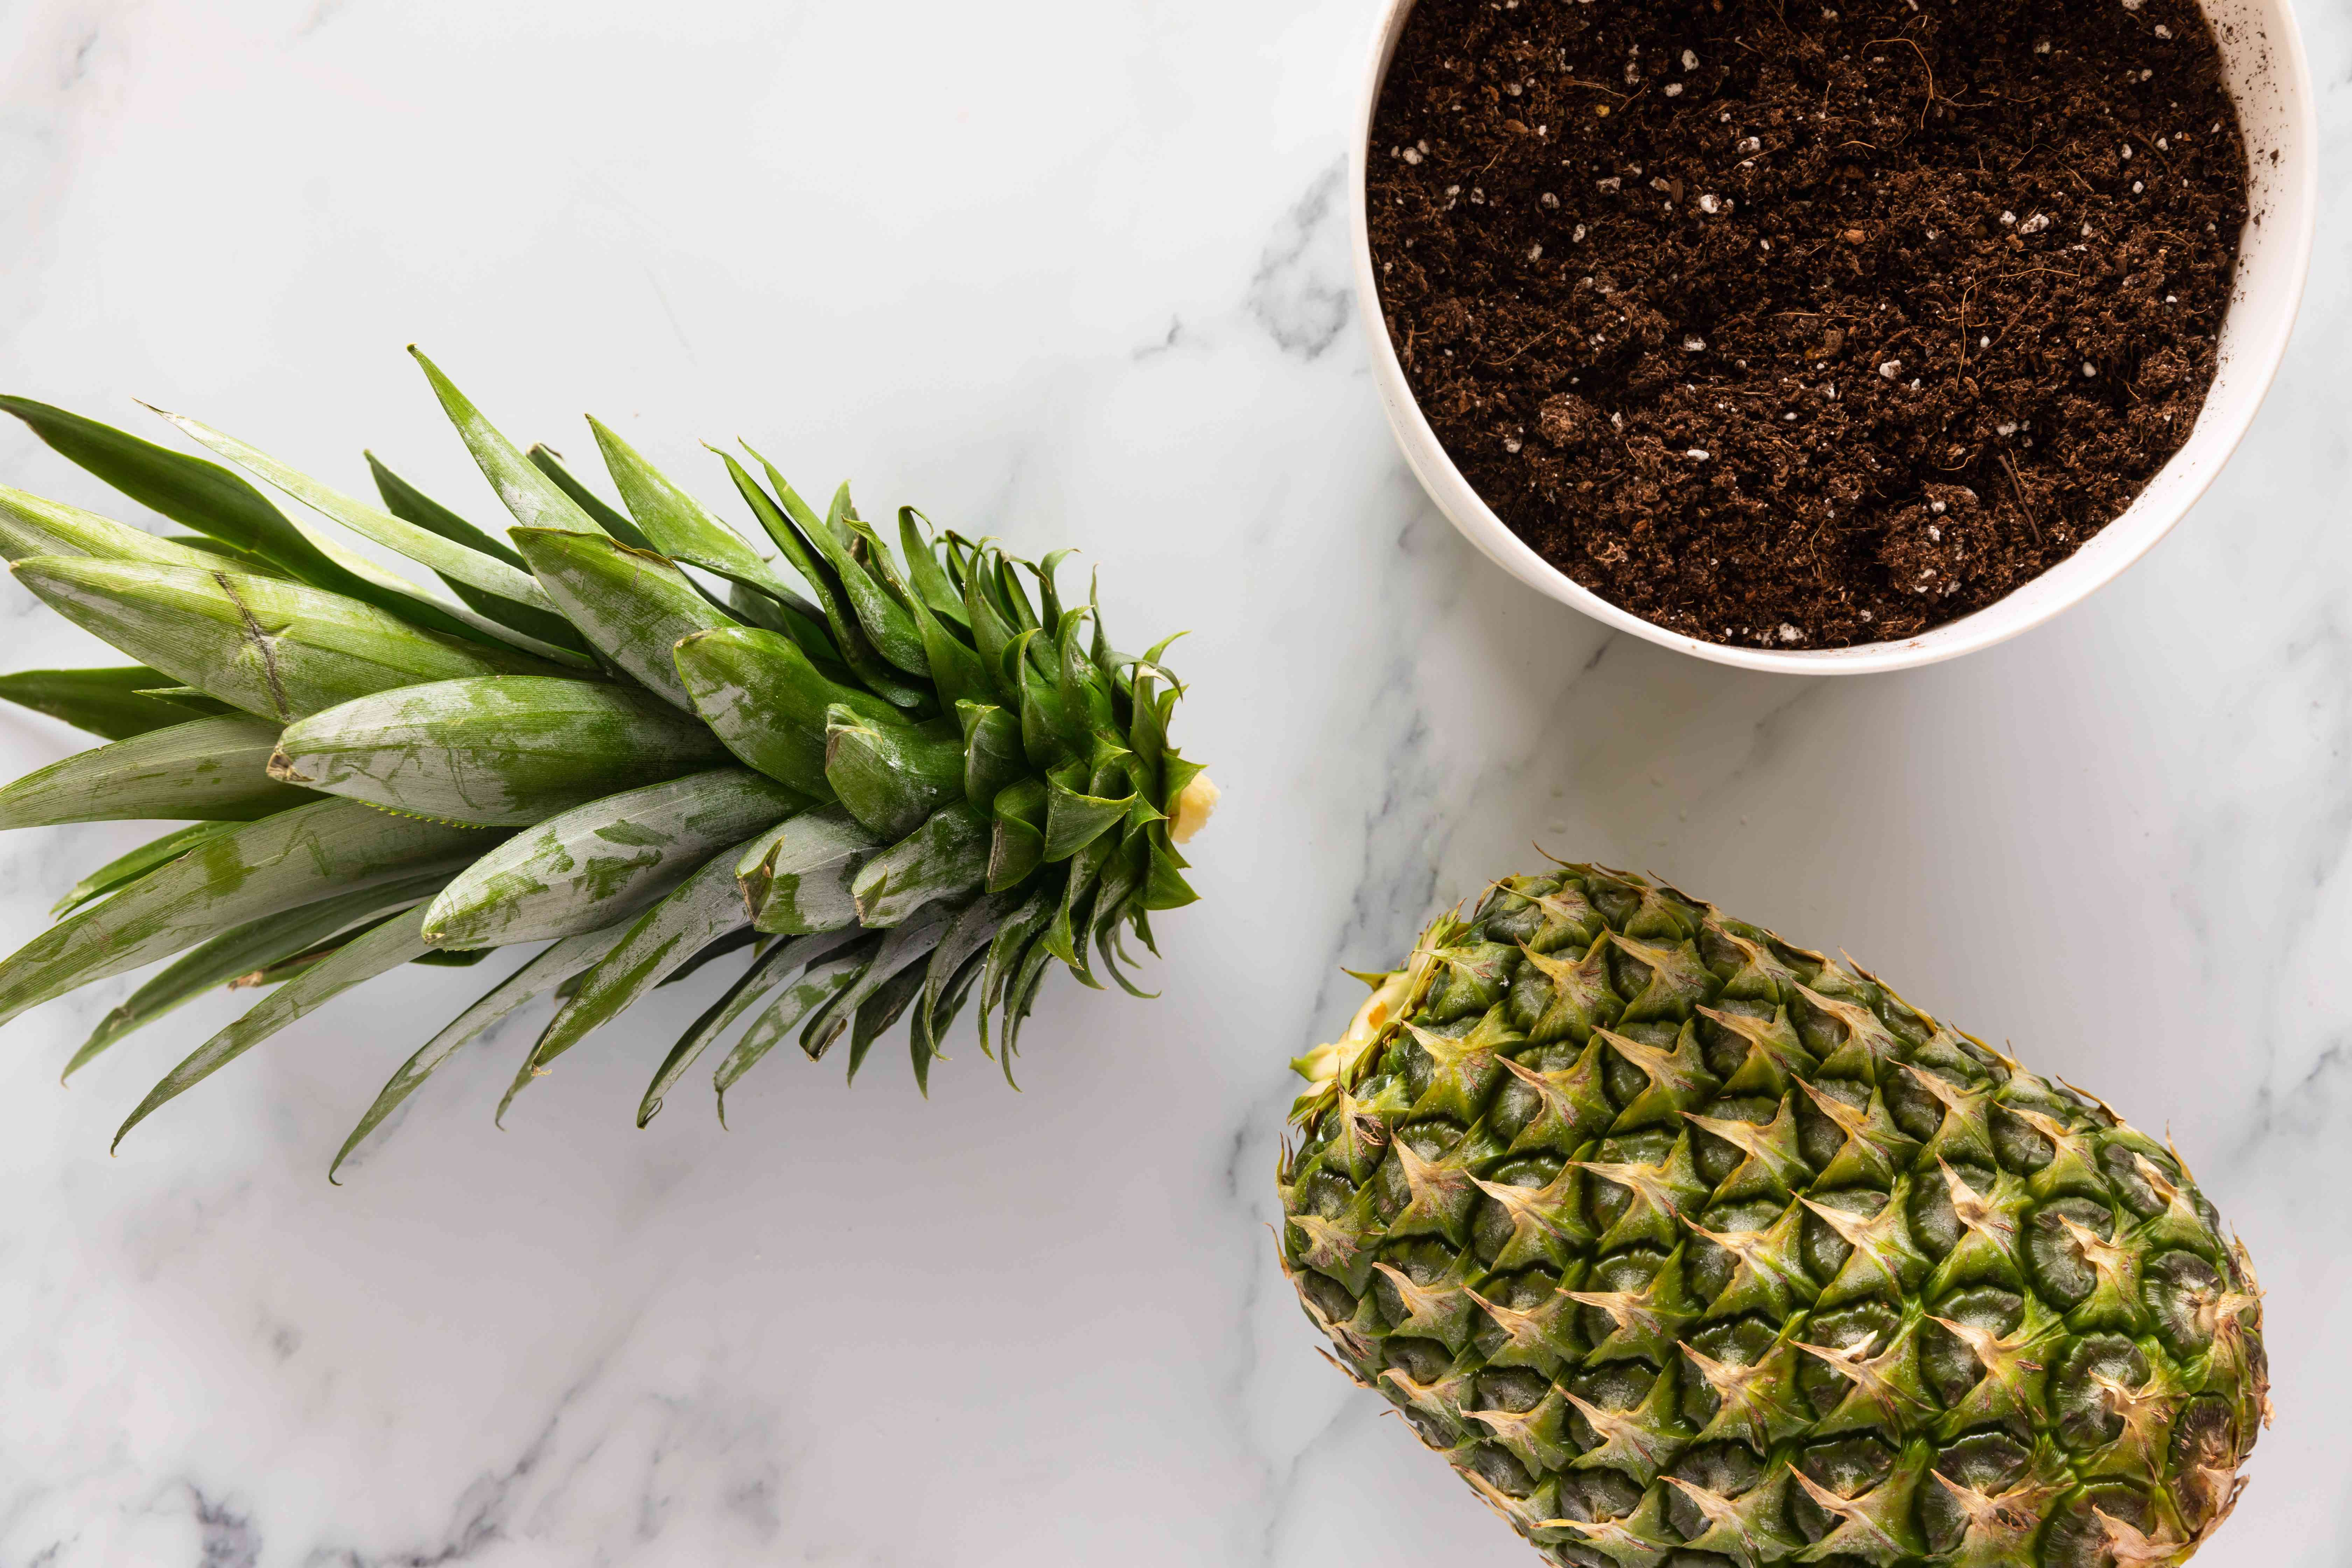 top of a pineapple cut off and ready to be planted